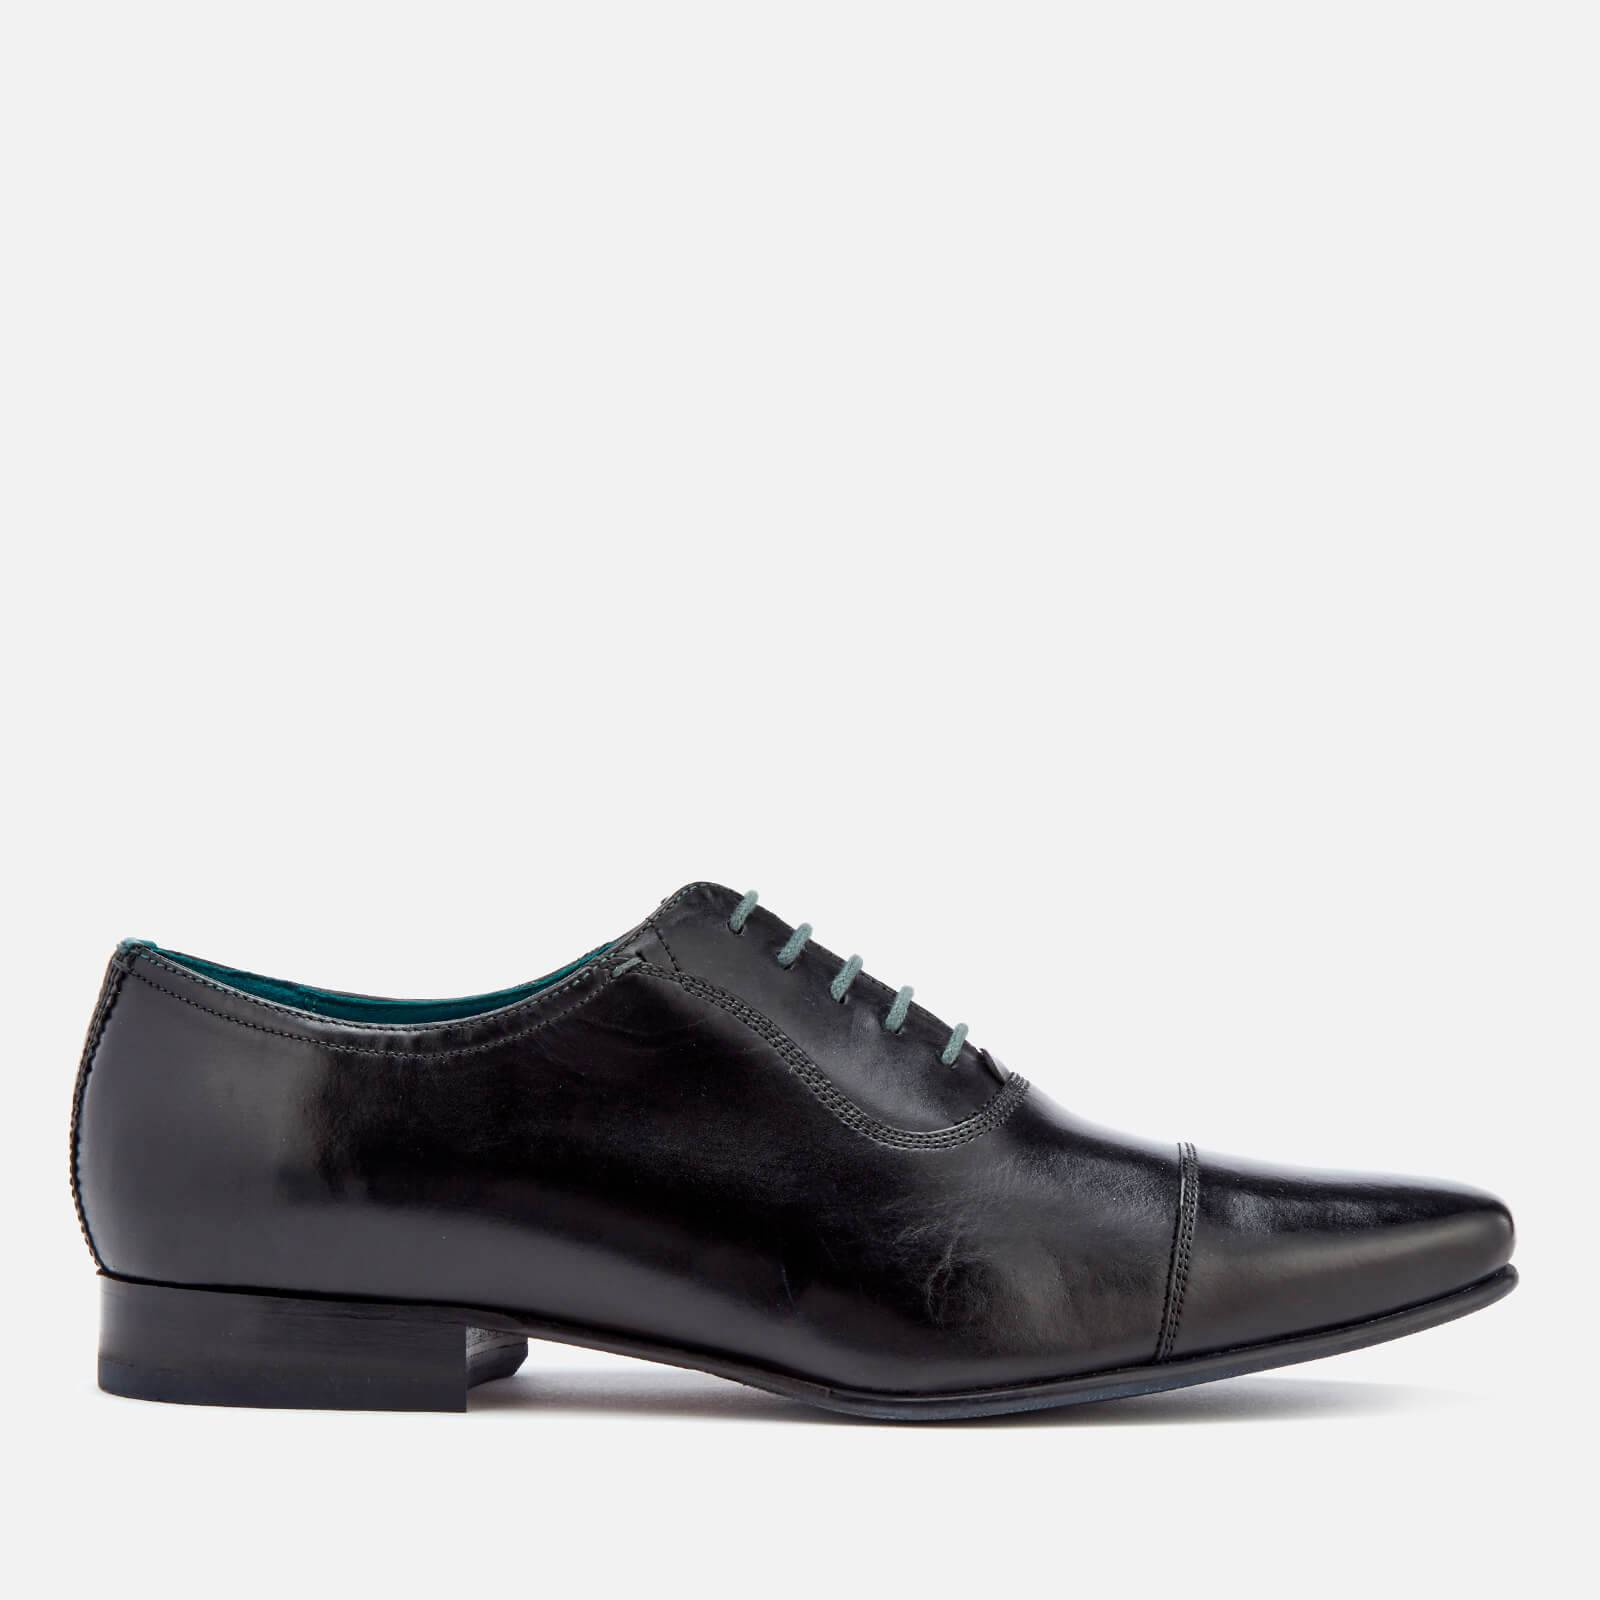 Ted Baker Men's Karney Leather Toe-Cap Oxford Shoes - Black - UK 7